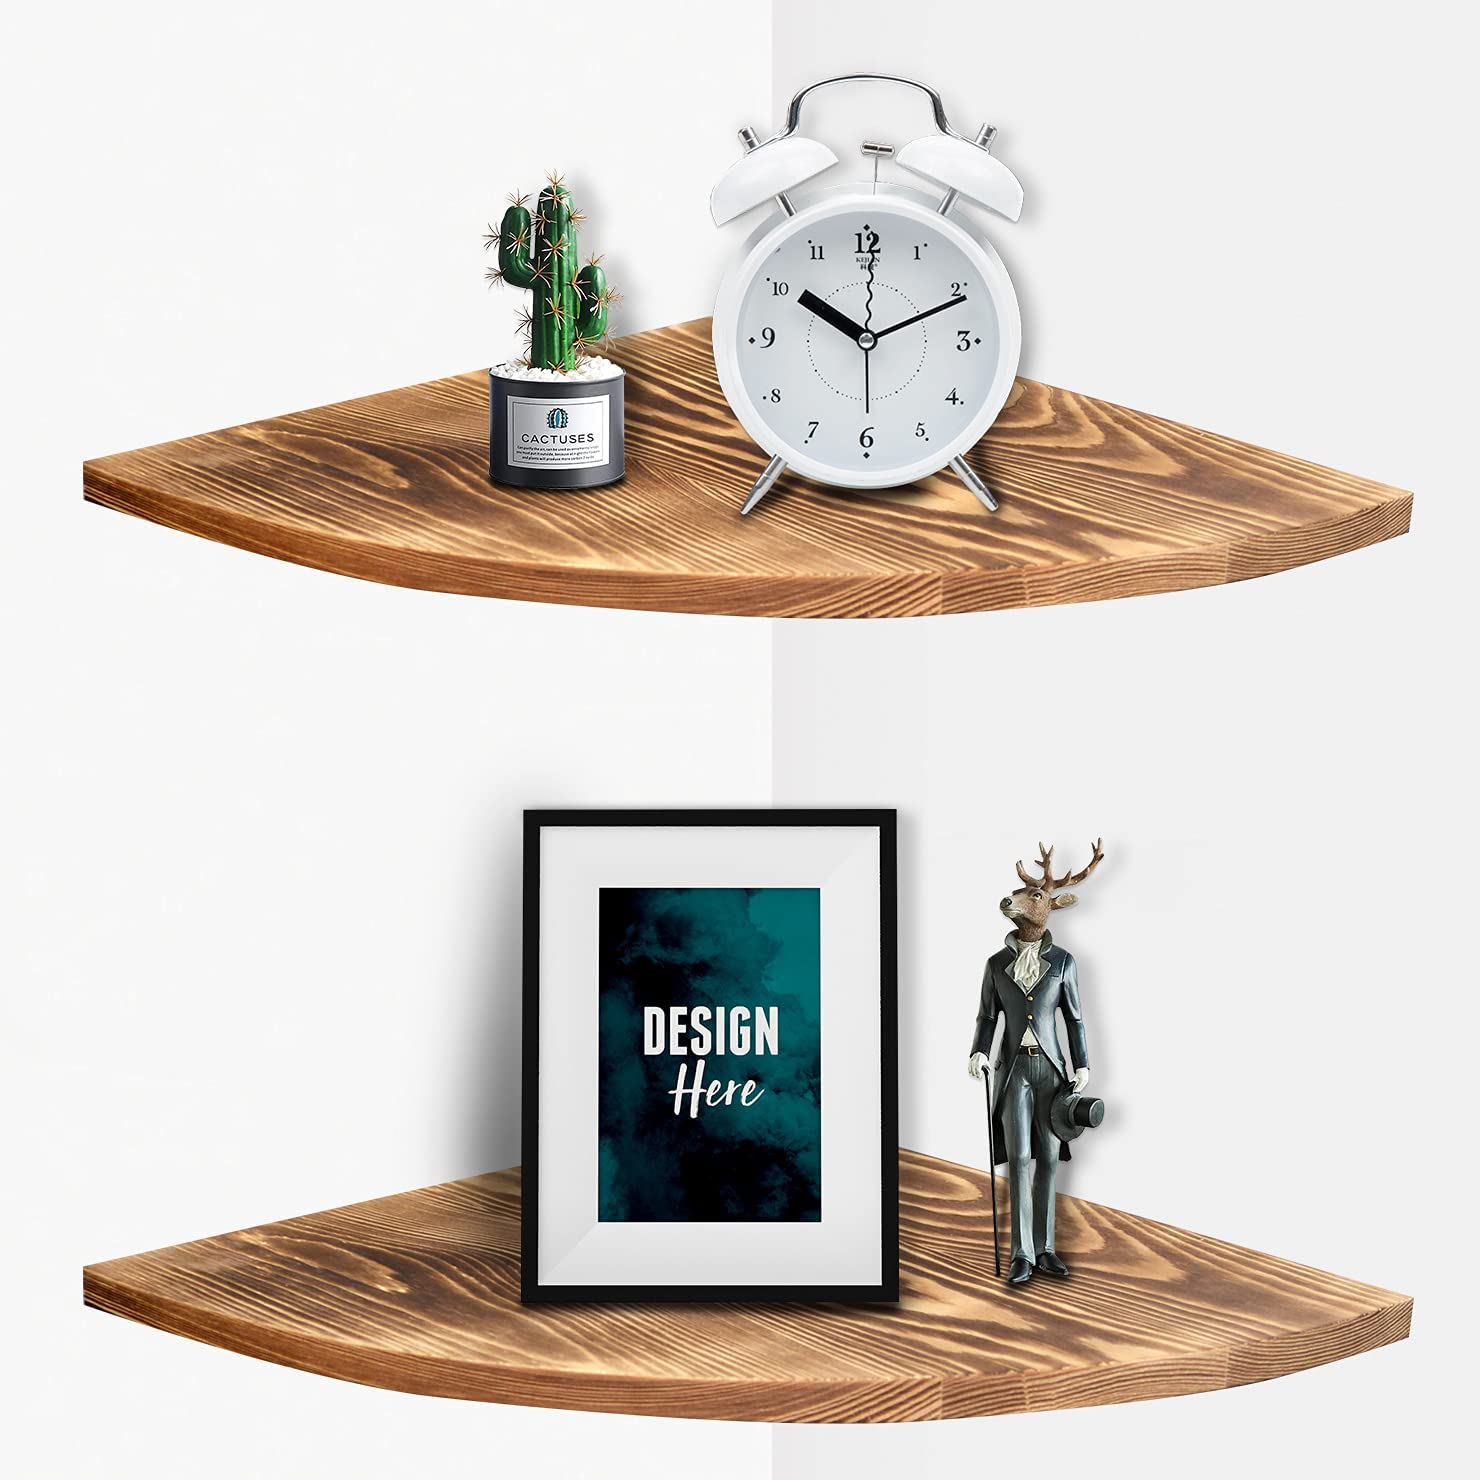 Corner Wall Shelves Décor Solid Wood Floating Corner Decorative Shelves for Wall 2 Tier Modern Rustic Wooden Display Wall Shelves Organizer for Bedroom Bathroom Kitchen Living Room Easy to Install